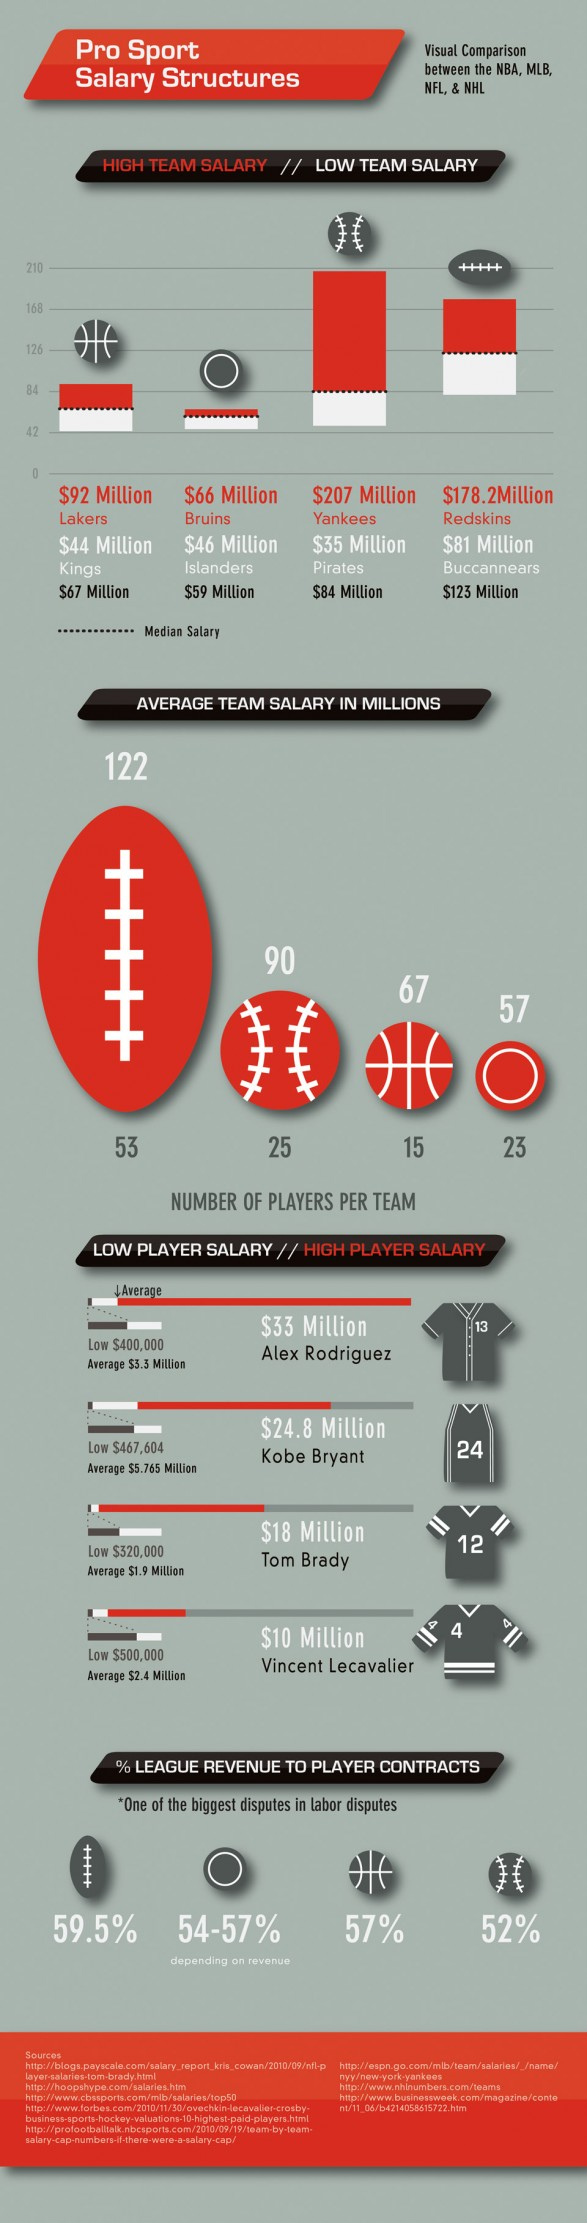 Interesting Infographic on Pro Sport Salary Structures